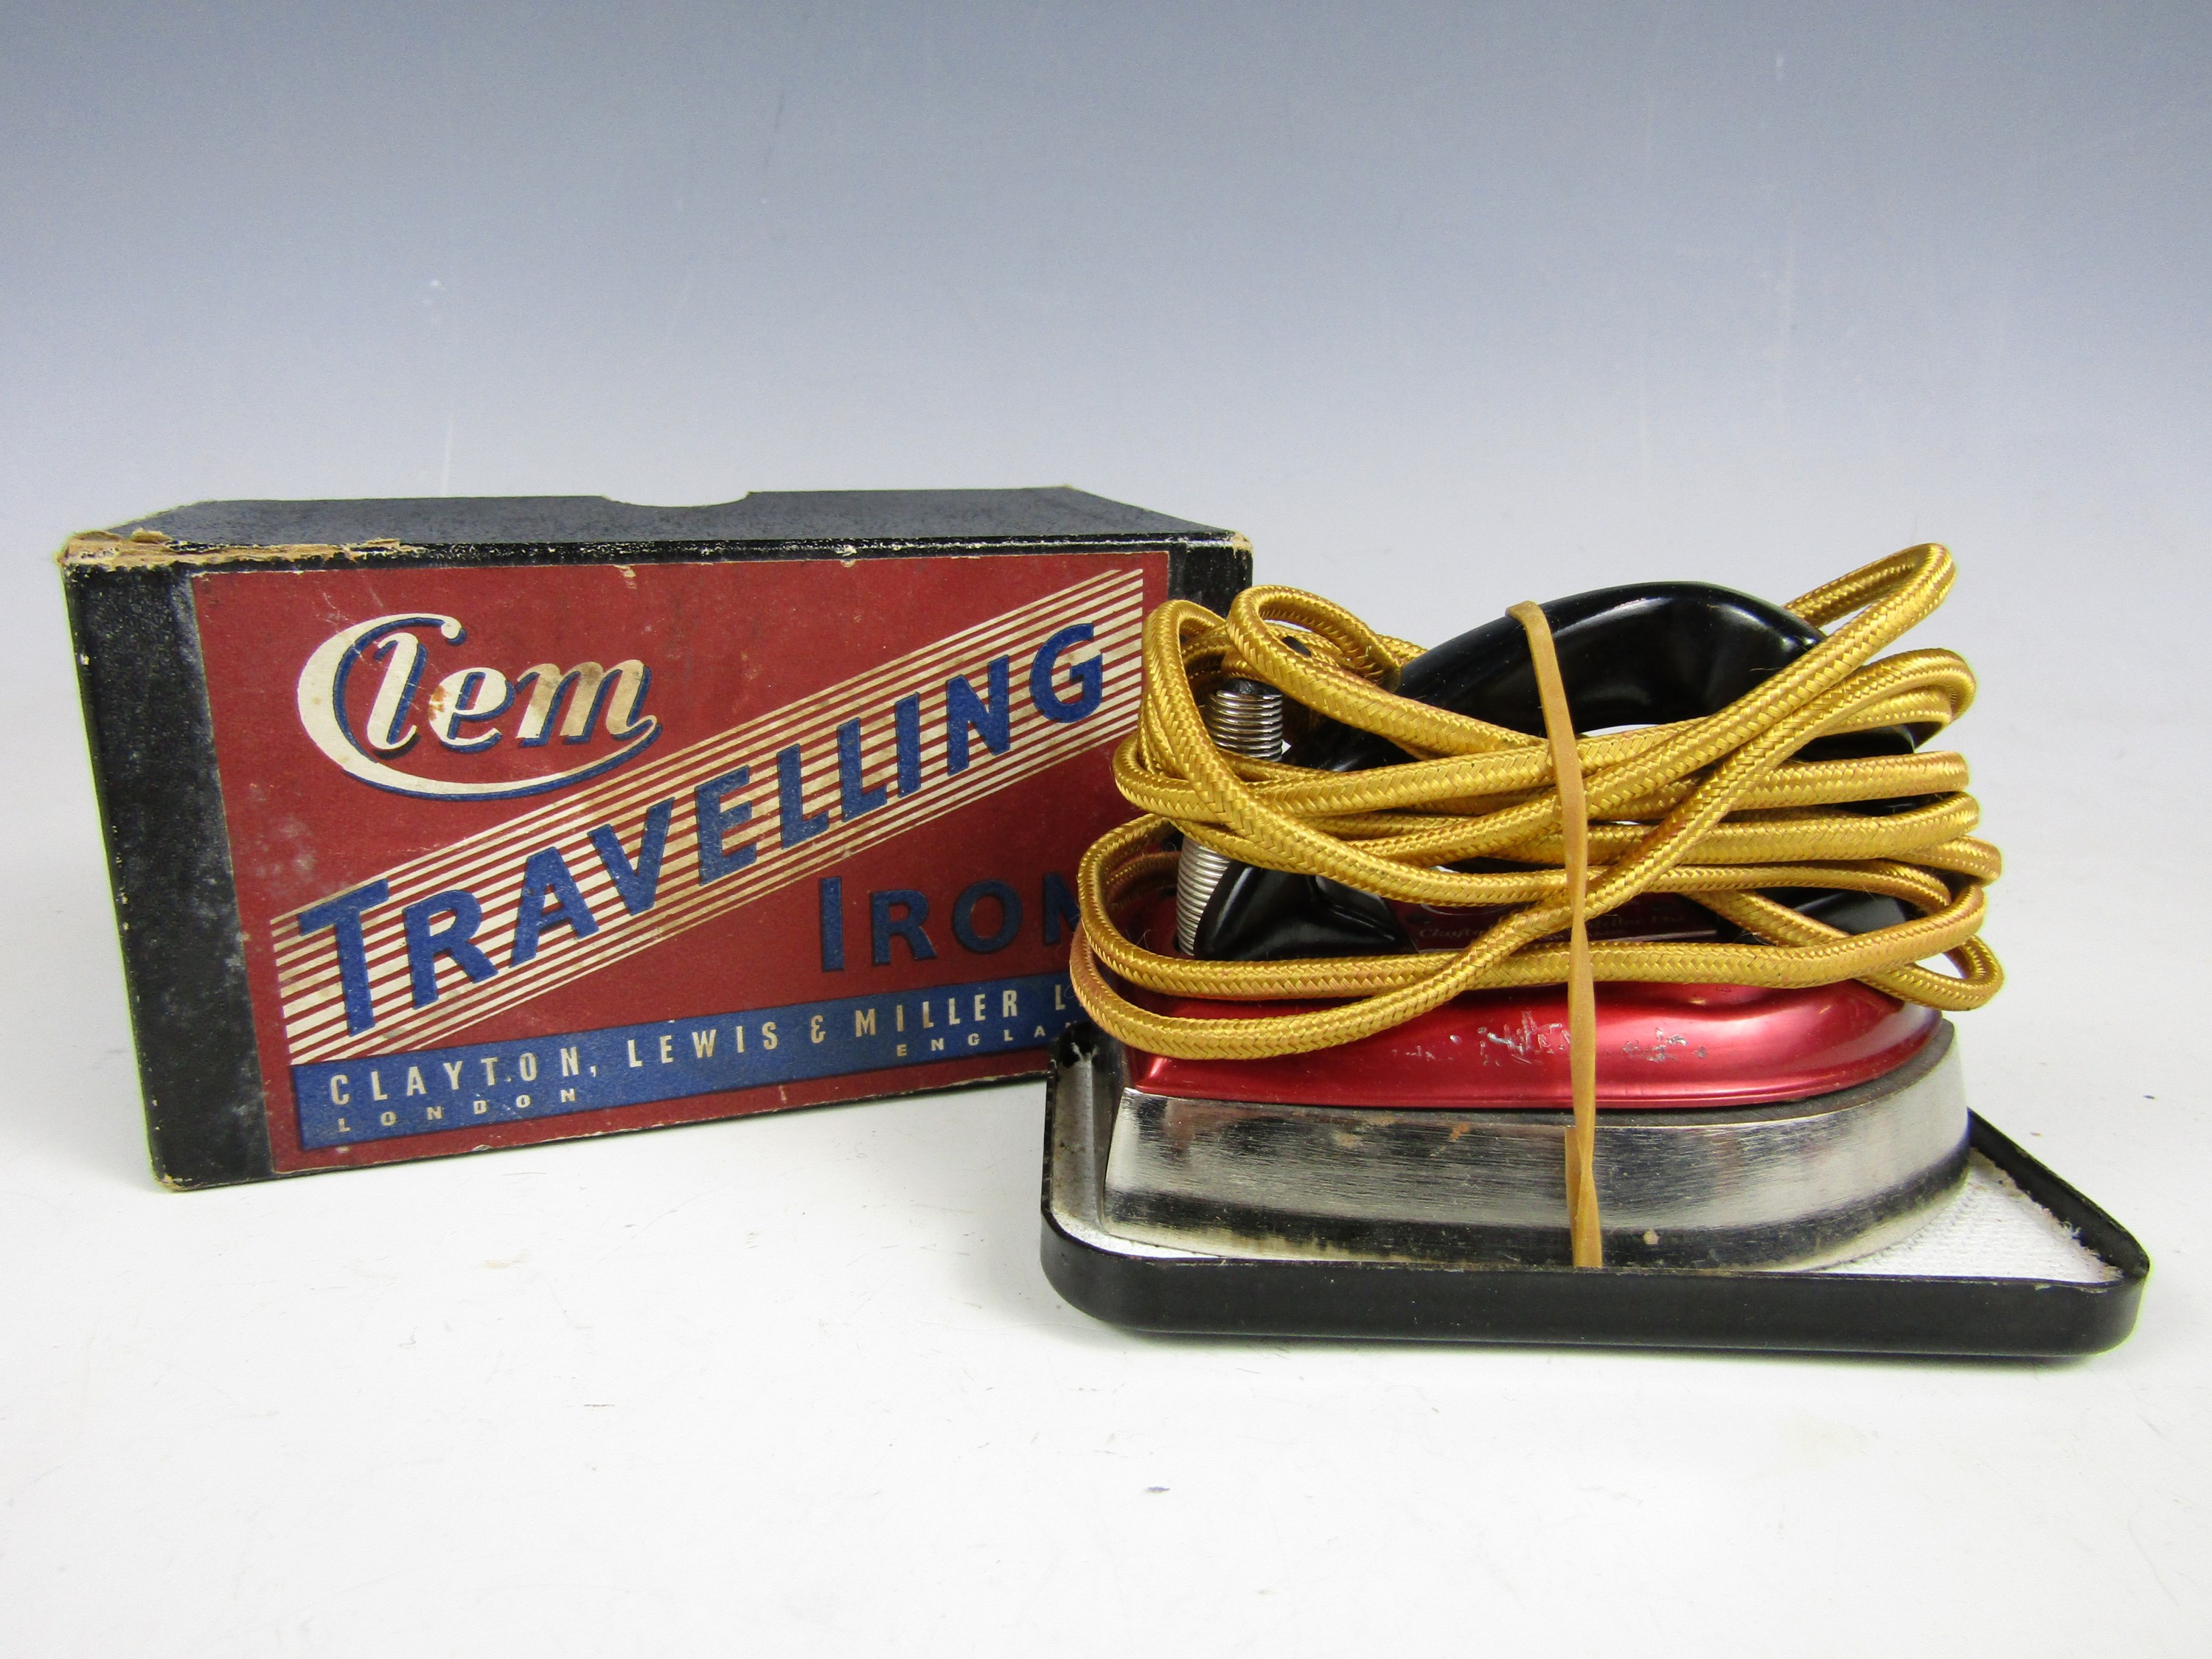 Lot 32 - A vintage boxed Clem travelling iron